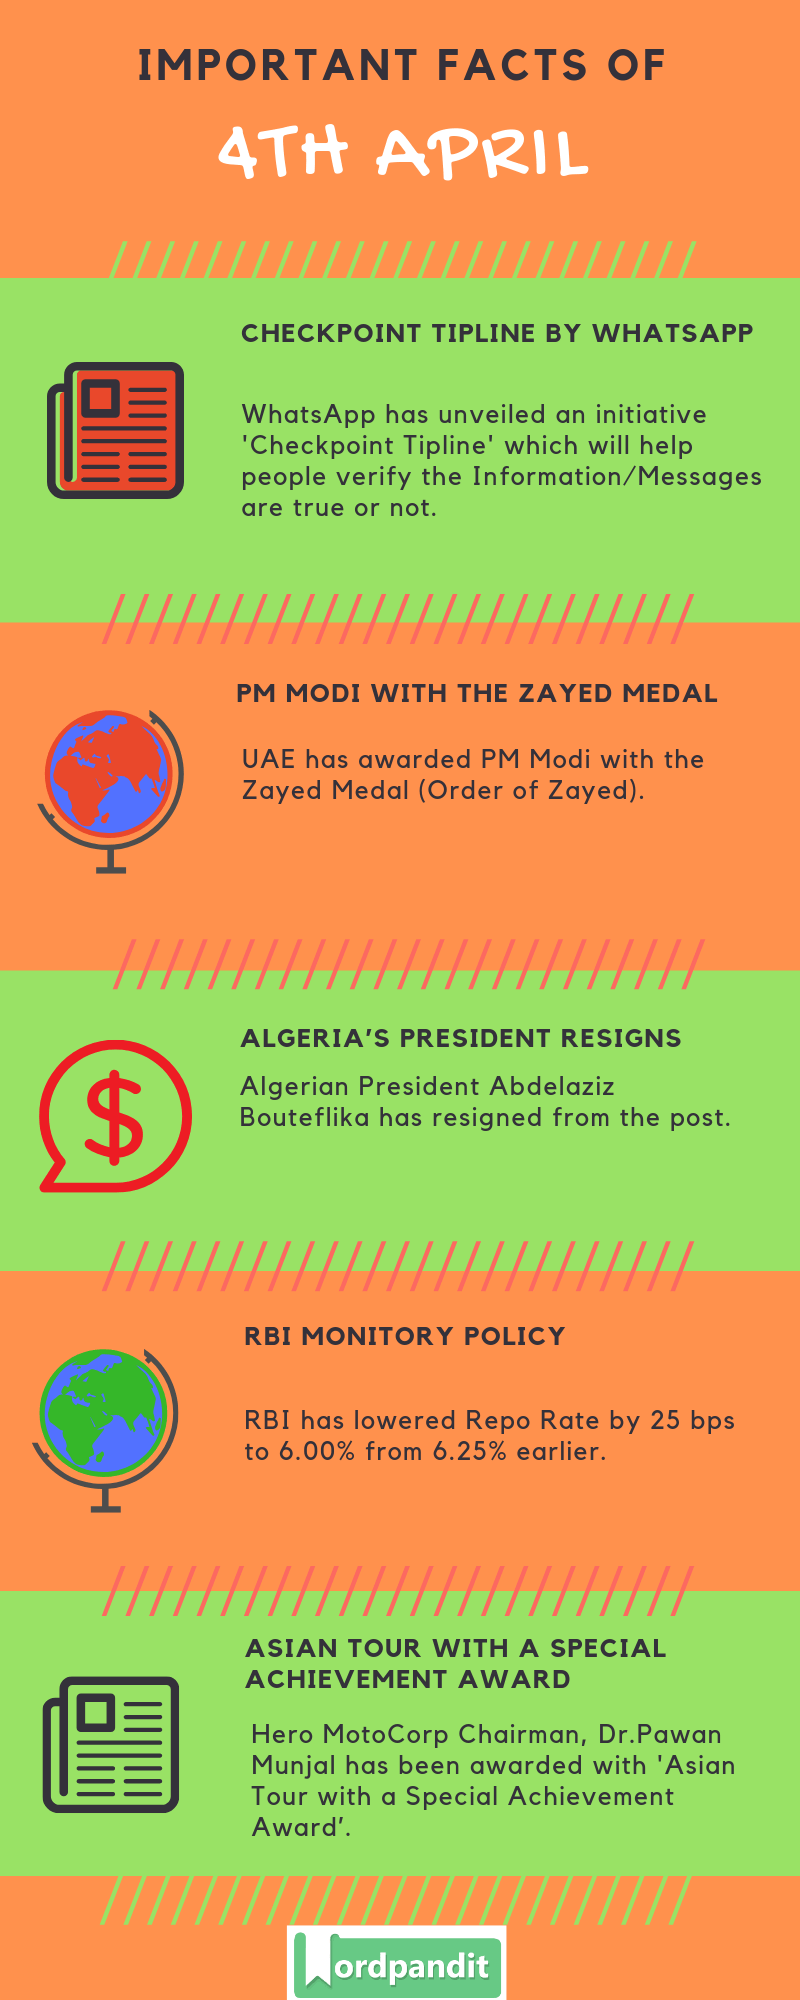 Daily Current Affairs 4 April 2019 Current Affairs Quiz 4 April 2019 Current Affairs Infographic